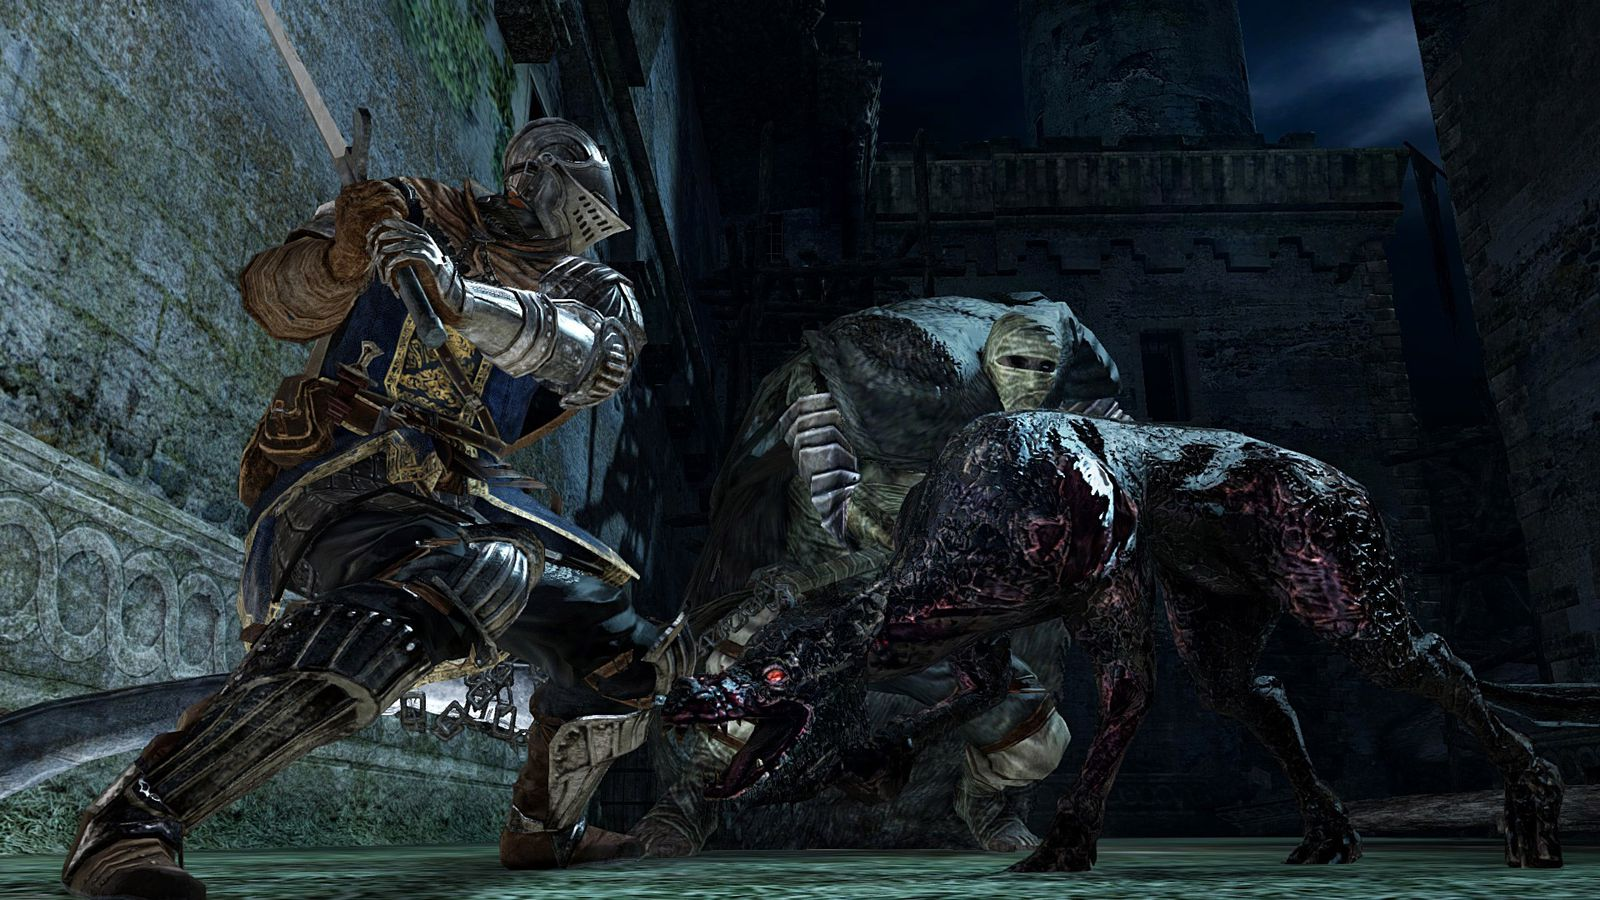 Dark Souls Ii Out Stunning Wallpapers High Quality: The Modder Who Fixed Dark Souls' PC Port Scrutinizes Dark